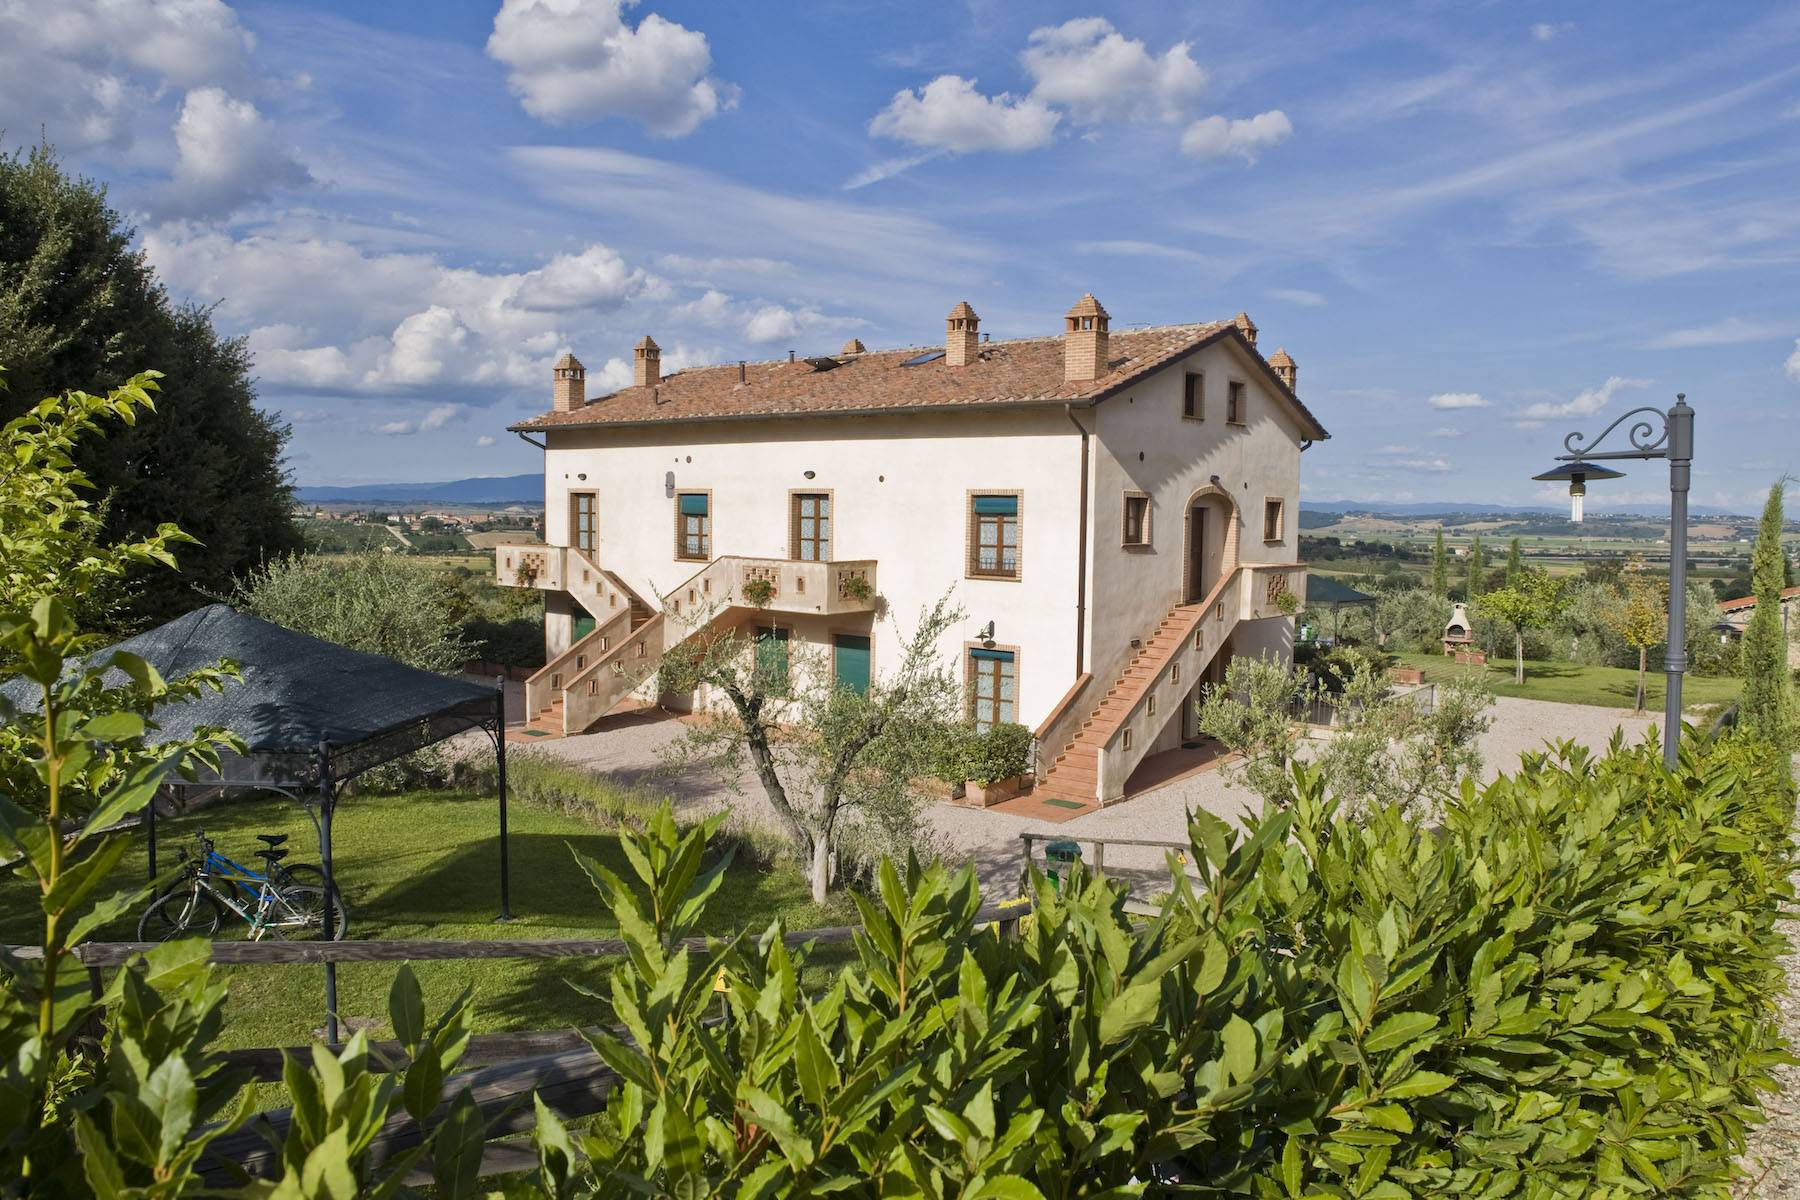 Property for Sale at Beautiful country house with pool in Montepulciano Montepulciano, Siena Italy